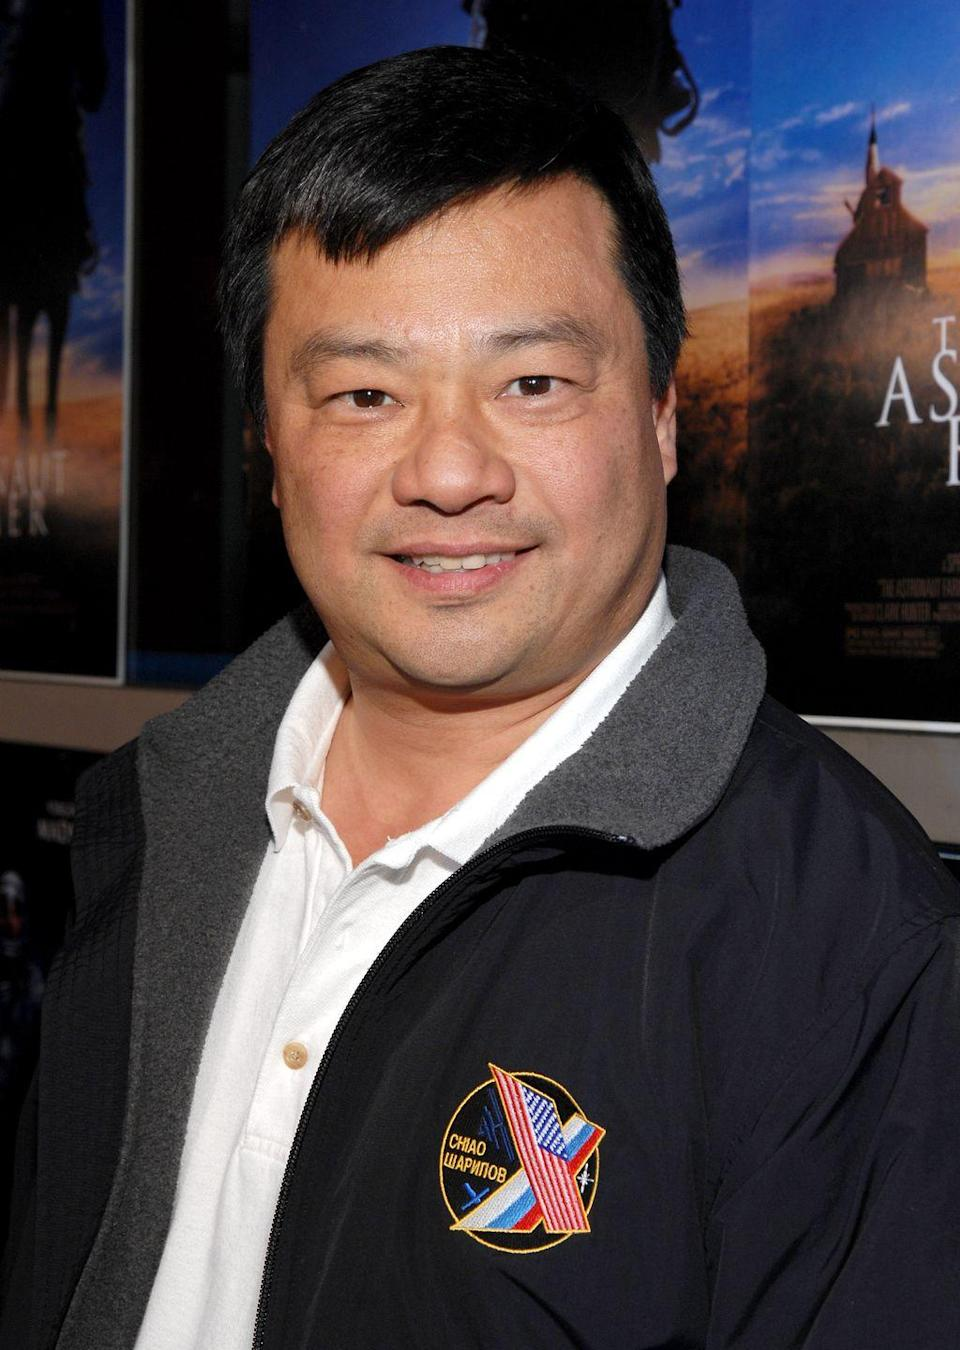 """<p>Before he was an astronaut and lived on board the International Space Station, Leroy worked at McDonald's as a 16-year-old in California's Walnut Creek—which Leroy <a href=""""http://goldenopportunitybook.com/leroy-chiao-phd/"""" rel=""""nofollow noopener"""" target=""""_blank"""" data-ylk=""""slk:told Teets"""" class=""""link rapid-noclick-resp"""">told Teets</a> for <em><a href=""""https://www.amazon.com/Golden-Opportunity-Remarkable-Careers-McDonalds/dp/1604332794/?tag=syn-yahoo-20&ascsubtag=%5Bartid%7C10063.g.36700579%5Bsrc%7Cyahoo-us"""" rel=""""nofollow noopener"""" target=""""_blank"""" data-ylk=""""slk:Golden Opportunity: Remarkable Careers That Began at McDonald's"""" class=""""link rapid-noclick-resp"""">Golden Opportunity: Remarkable Careers That Began at McDonald's</a></em>: """"My experiences at McDonald's have translated into almost anything I've done.""""</p>"""